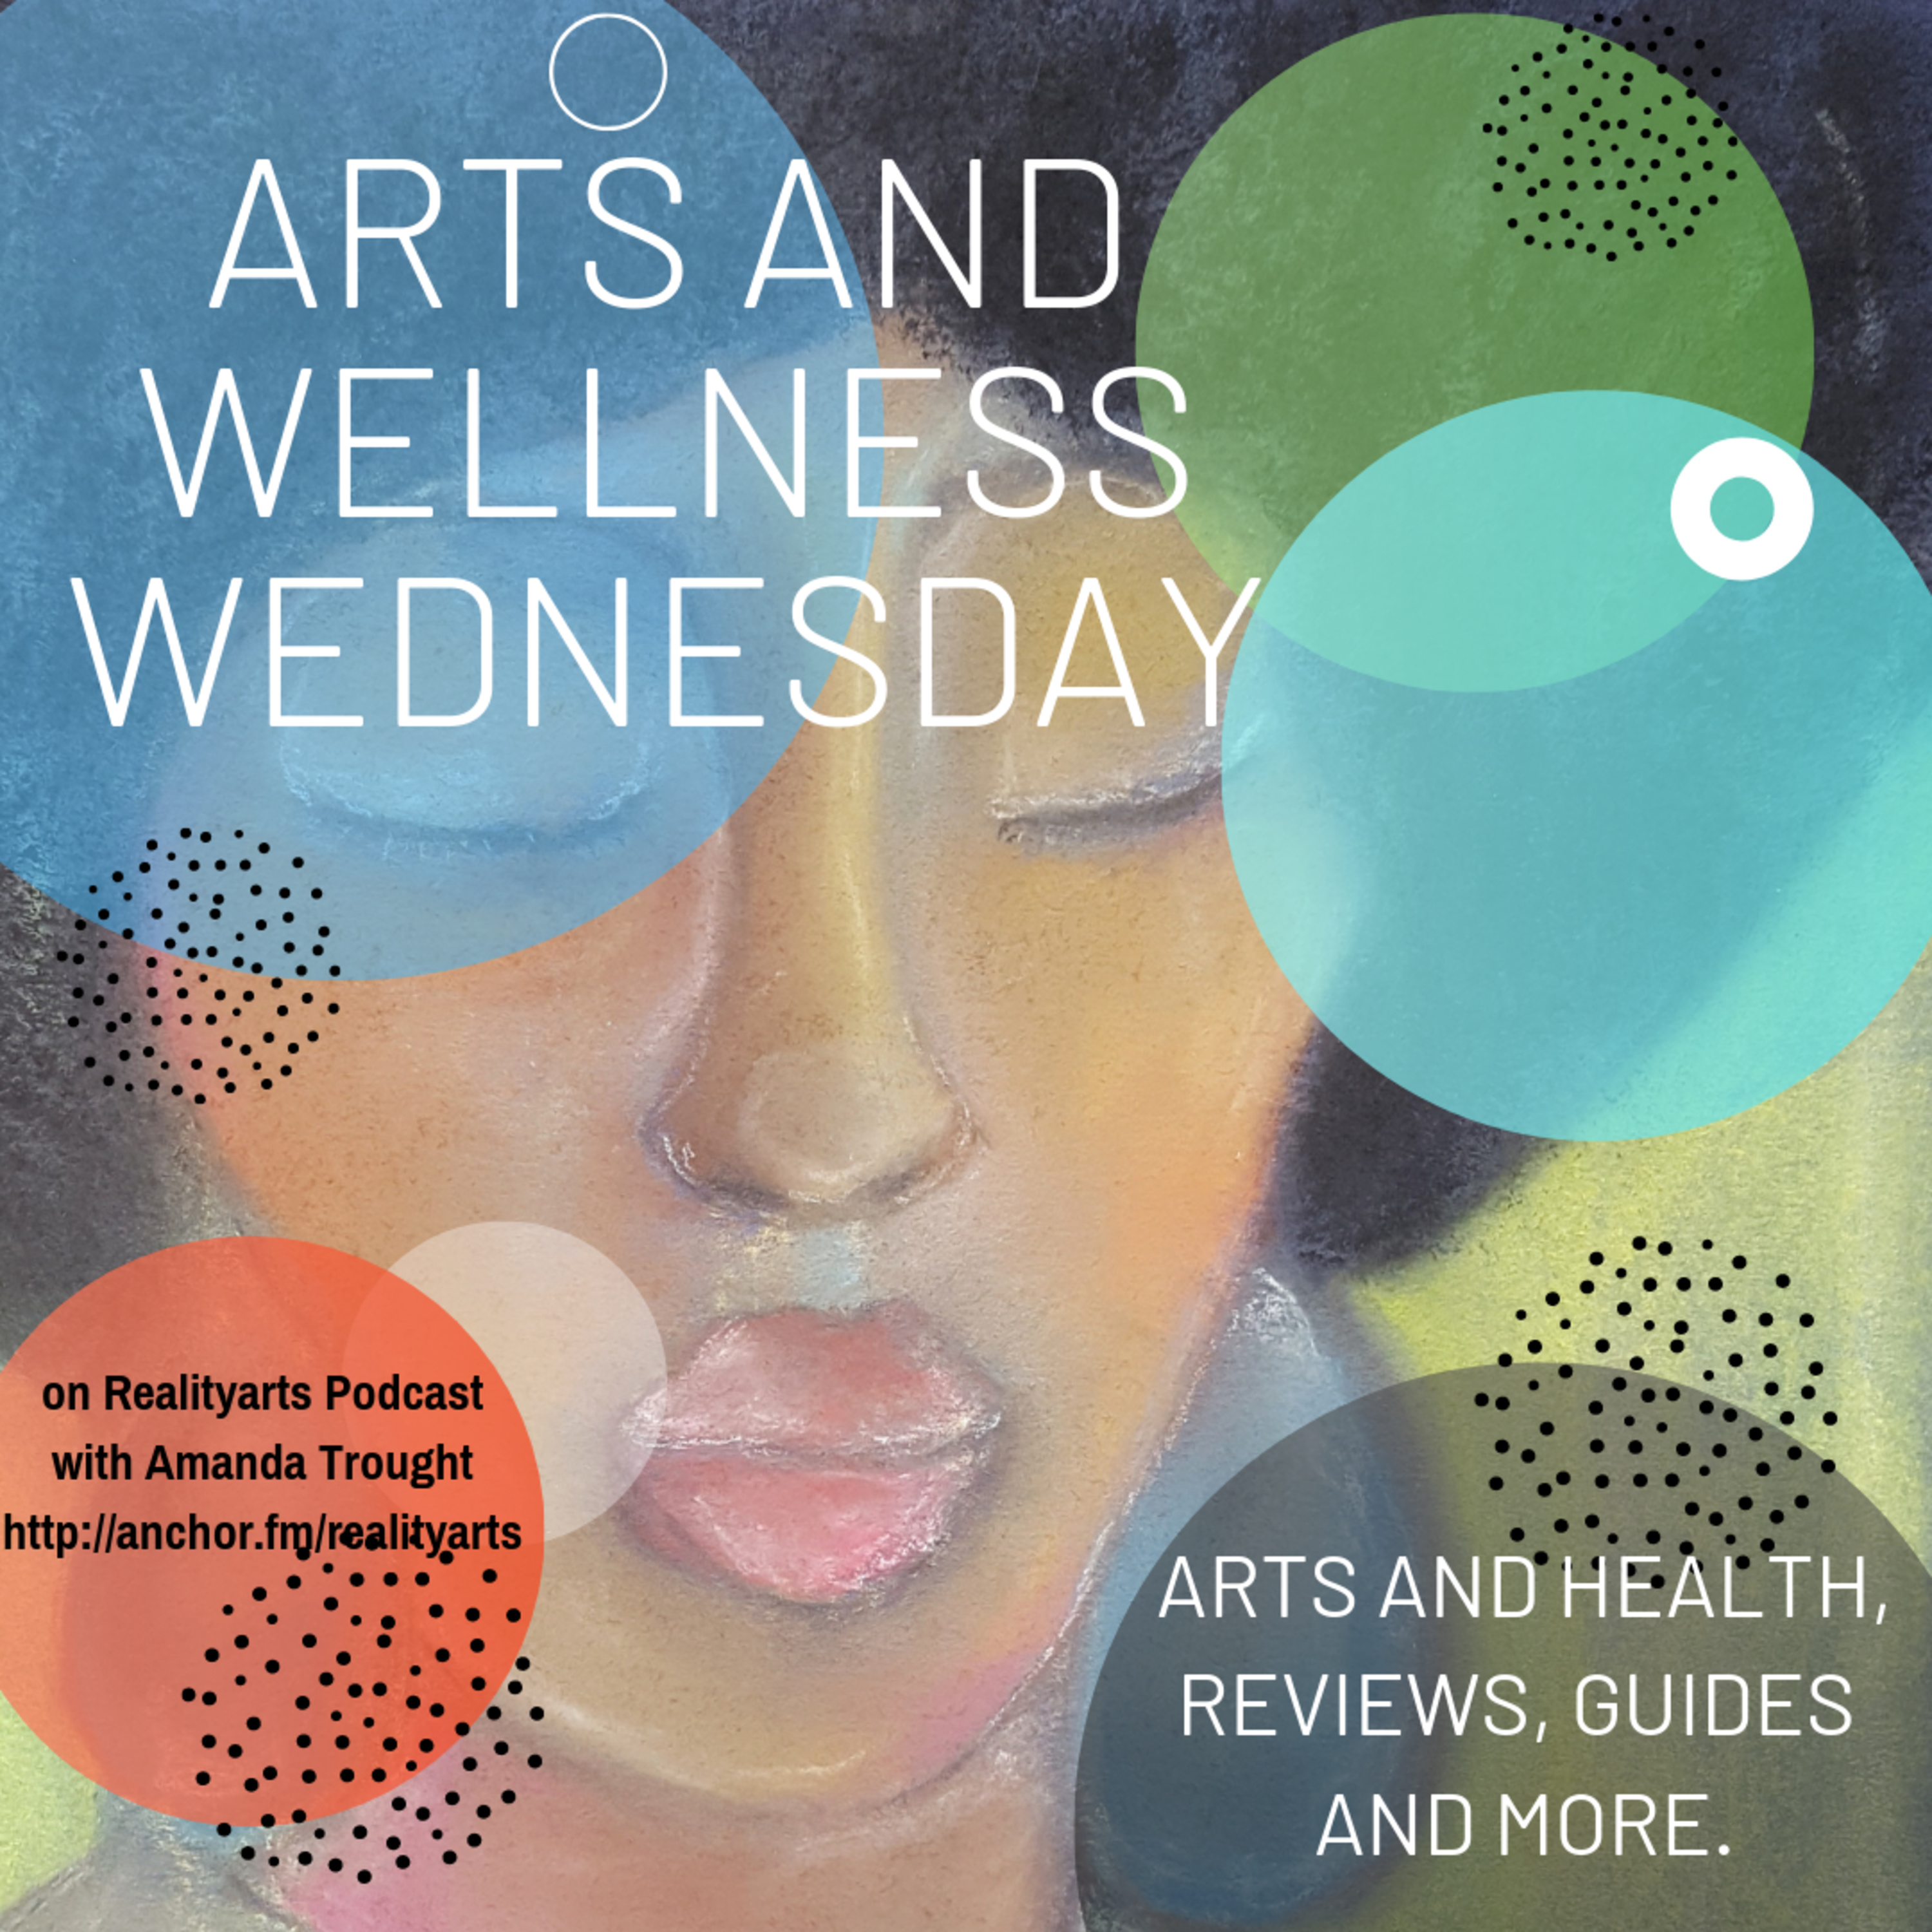 Episode 78 - Arts and Wellness Wednesdays - Minister John King, Barbados